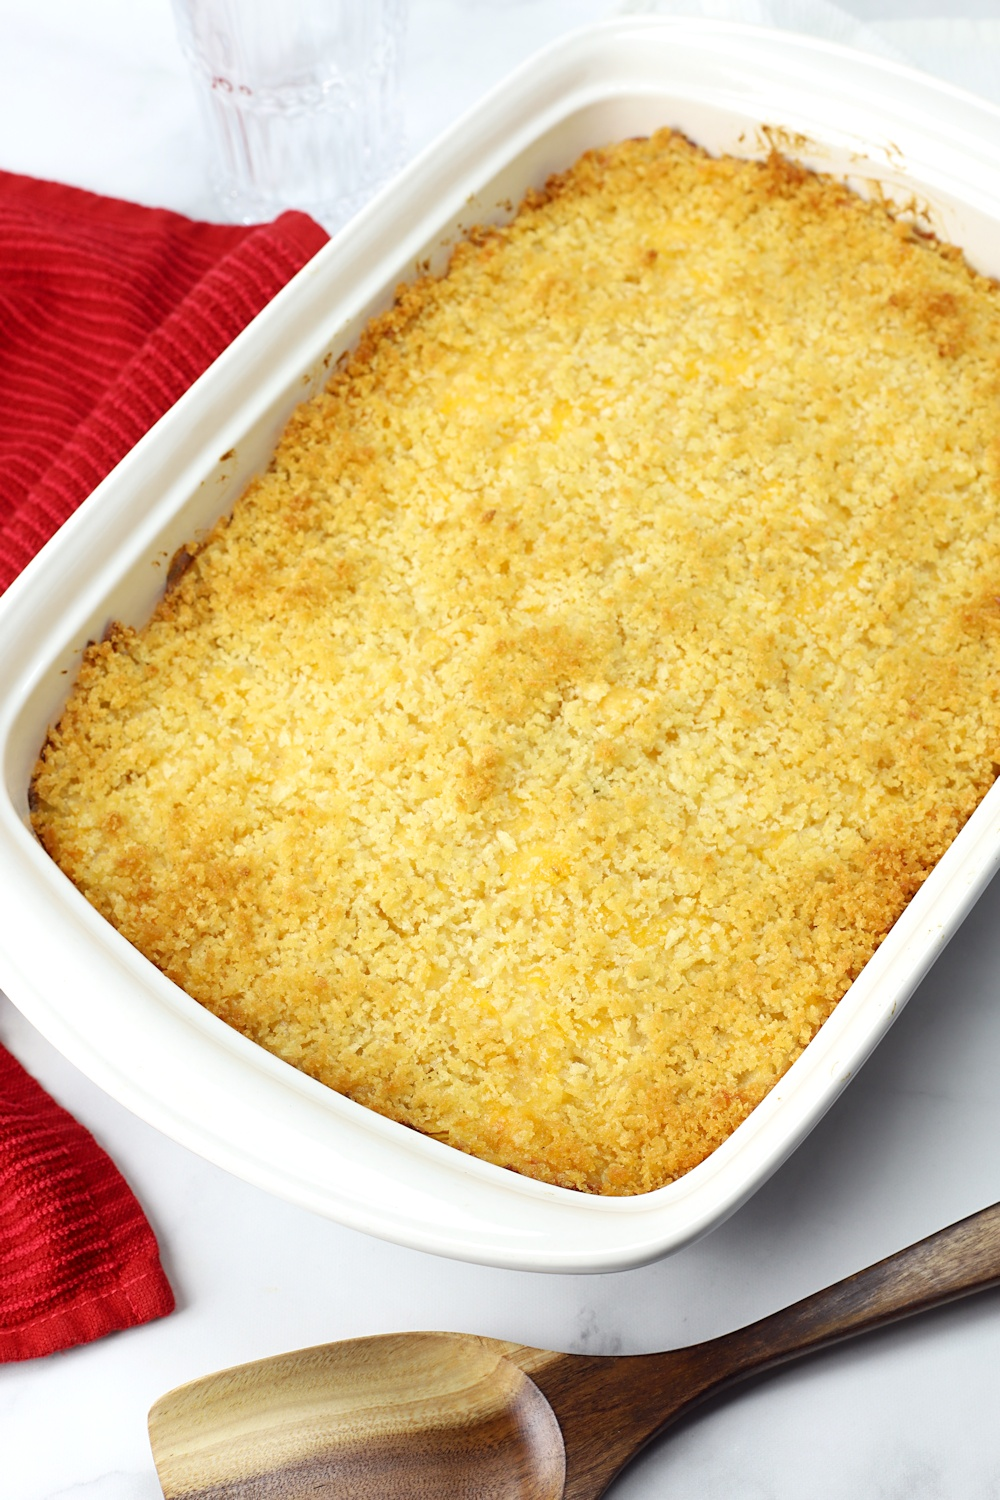 Hash brown casserole in a white baking dish.